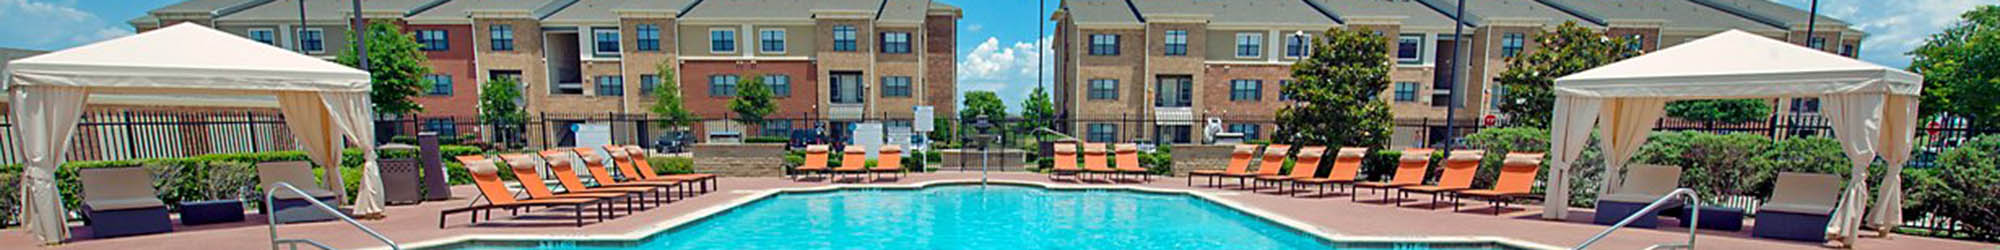 Contact Avana McKinney Ranch Apartments for information about our apartments in McKinney